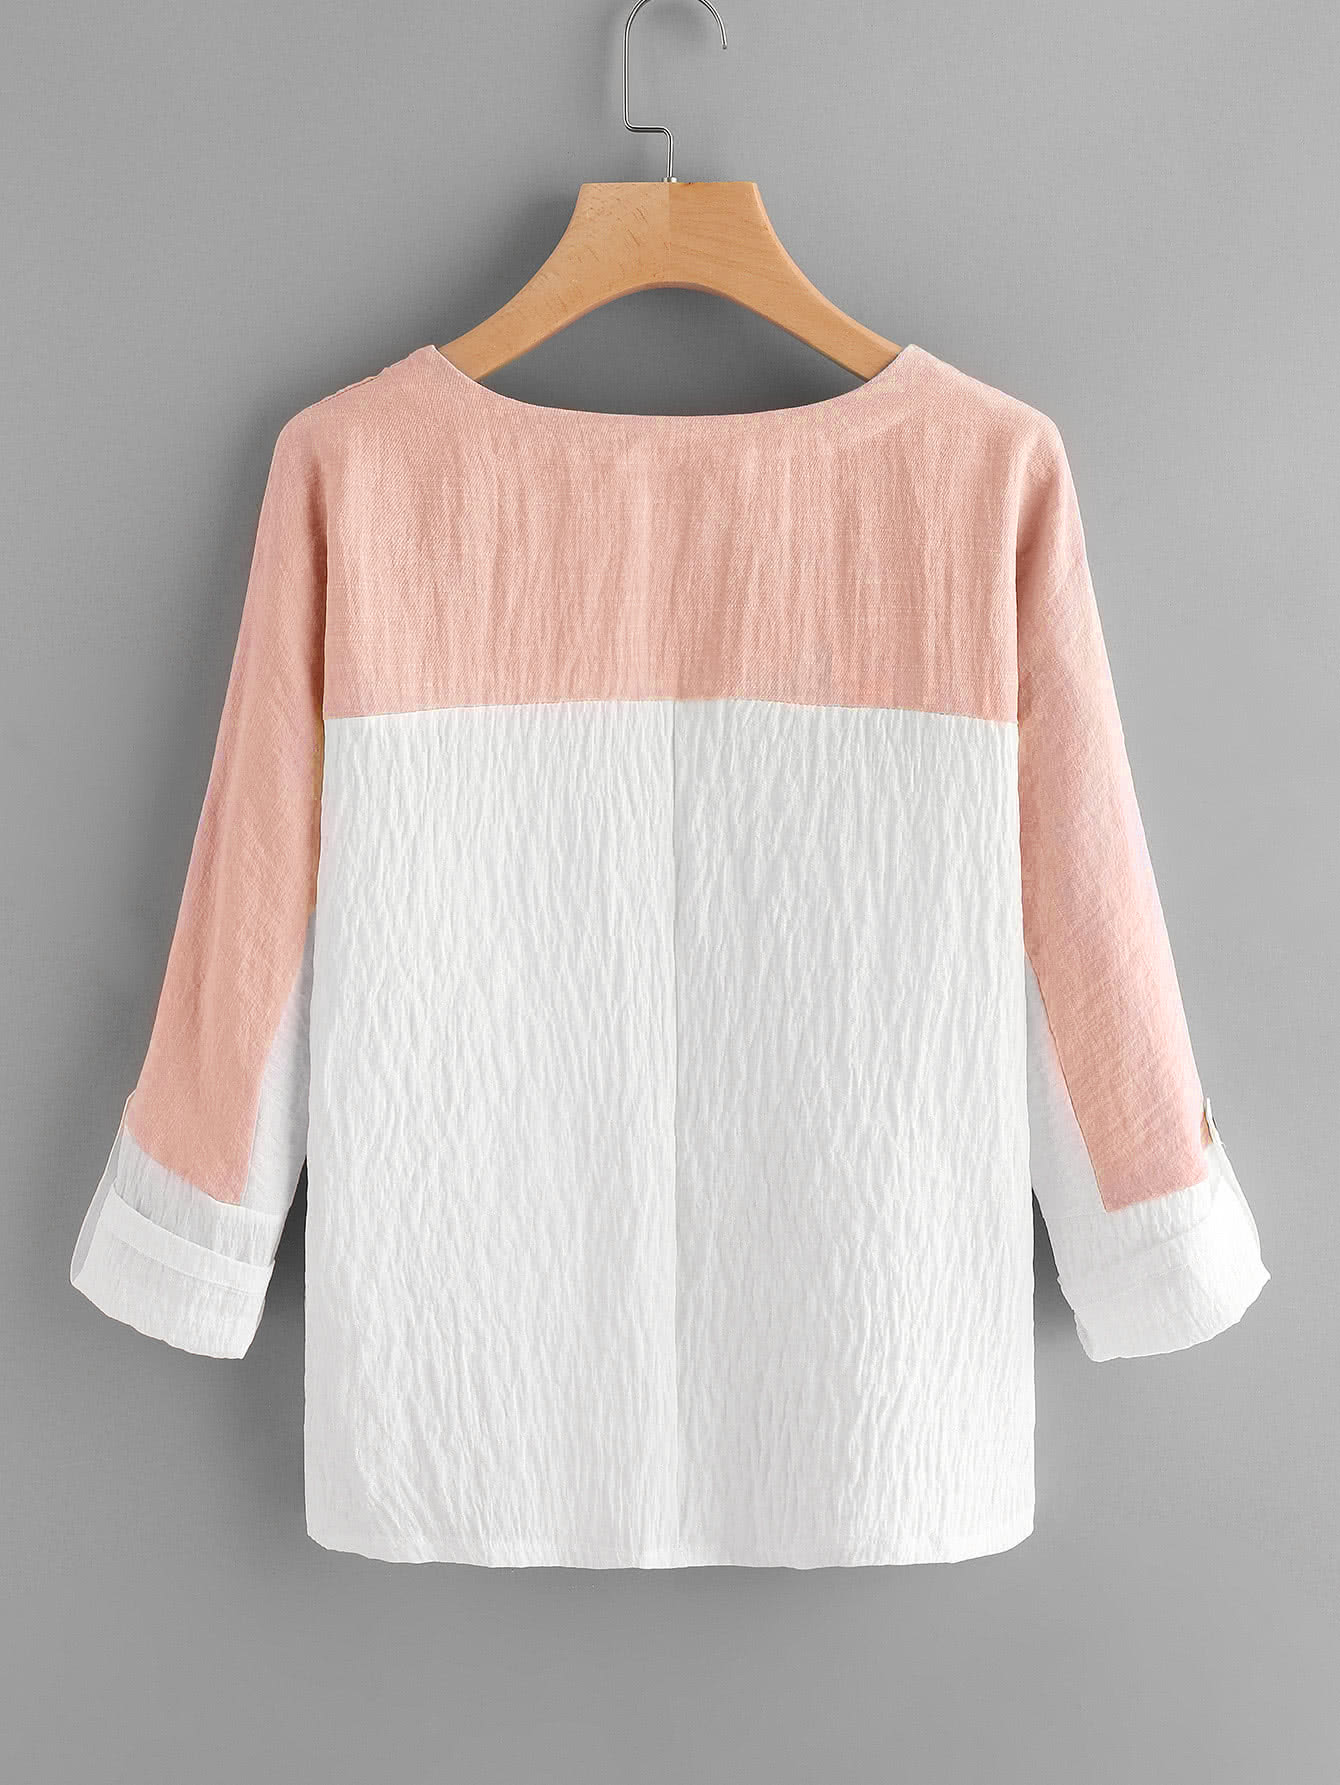 Two Tone Rolled Sleeve Blouse